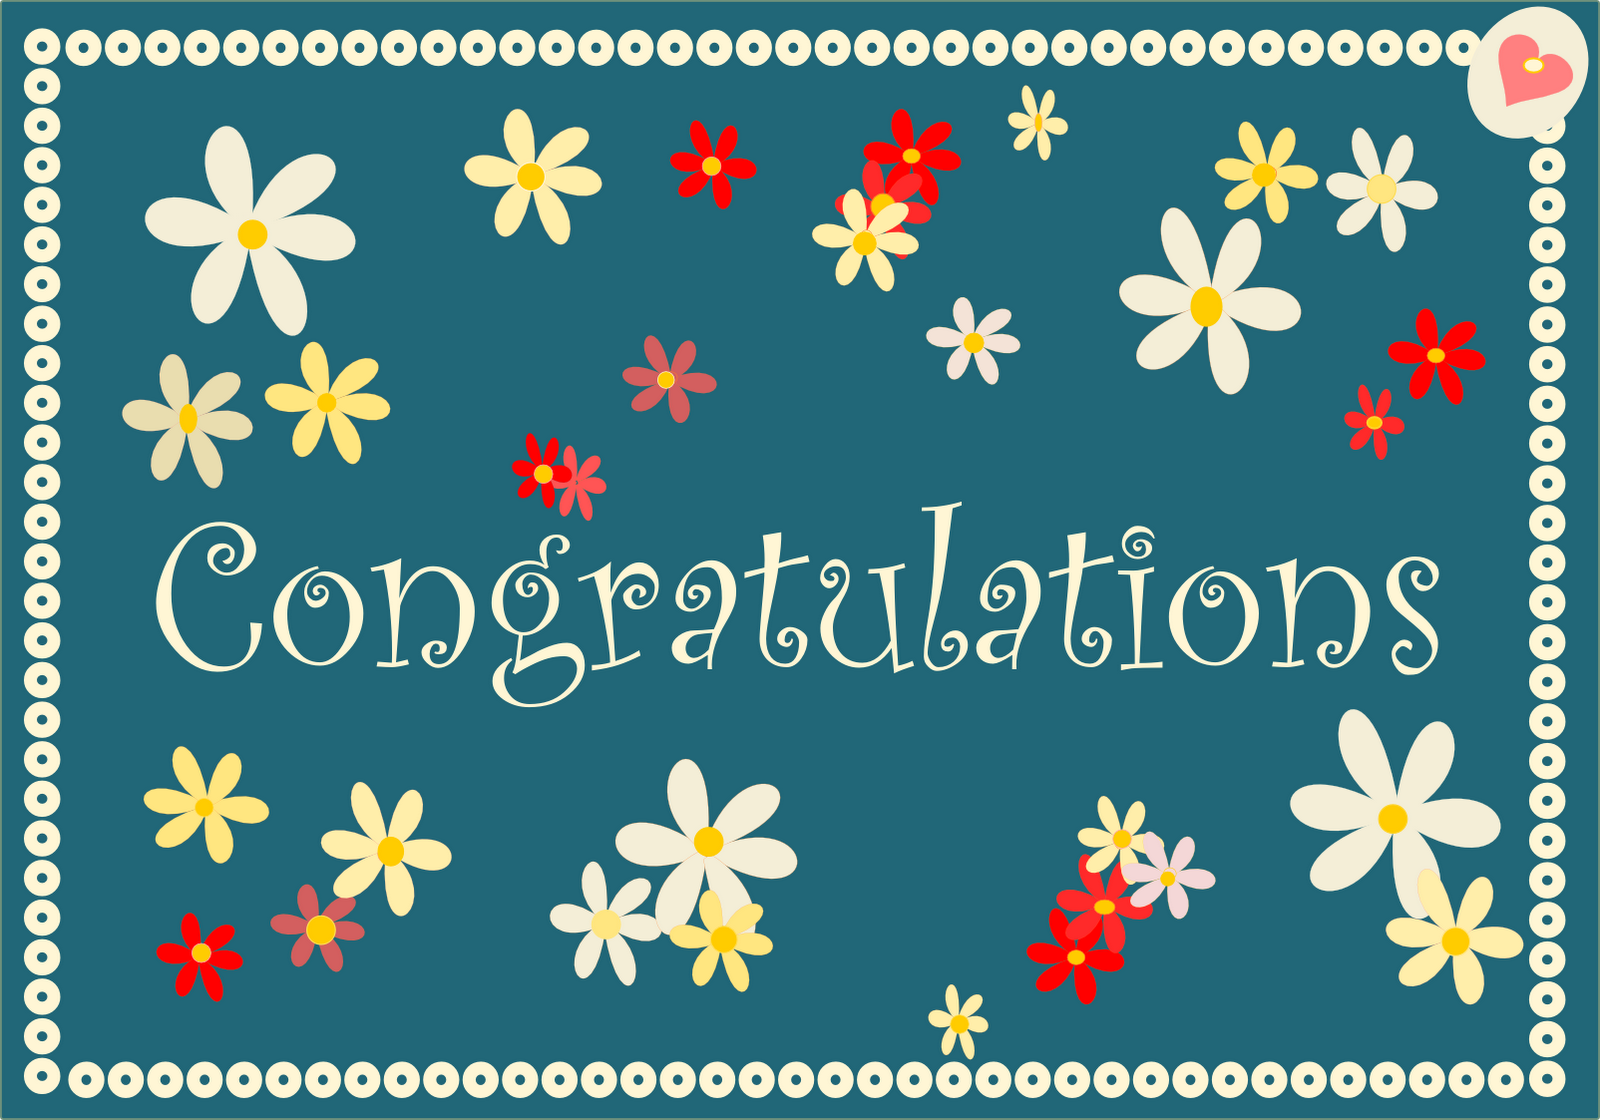 photo relating to Free Printable Congratulations Cards identified as cost-free printable congratulations playing cards inside retro shades